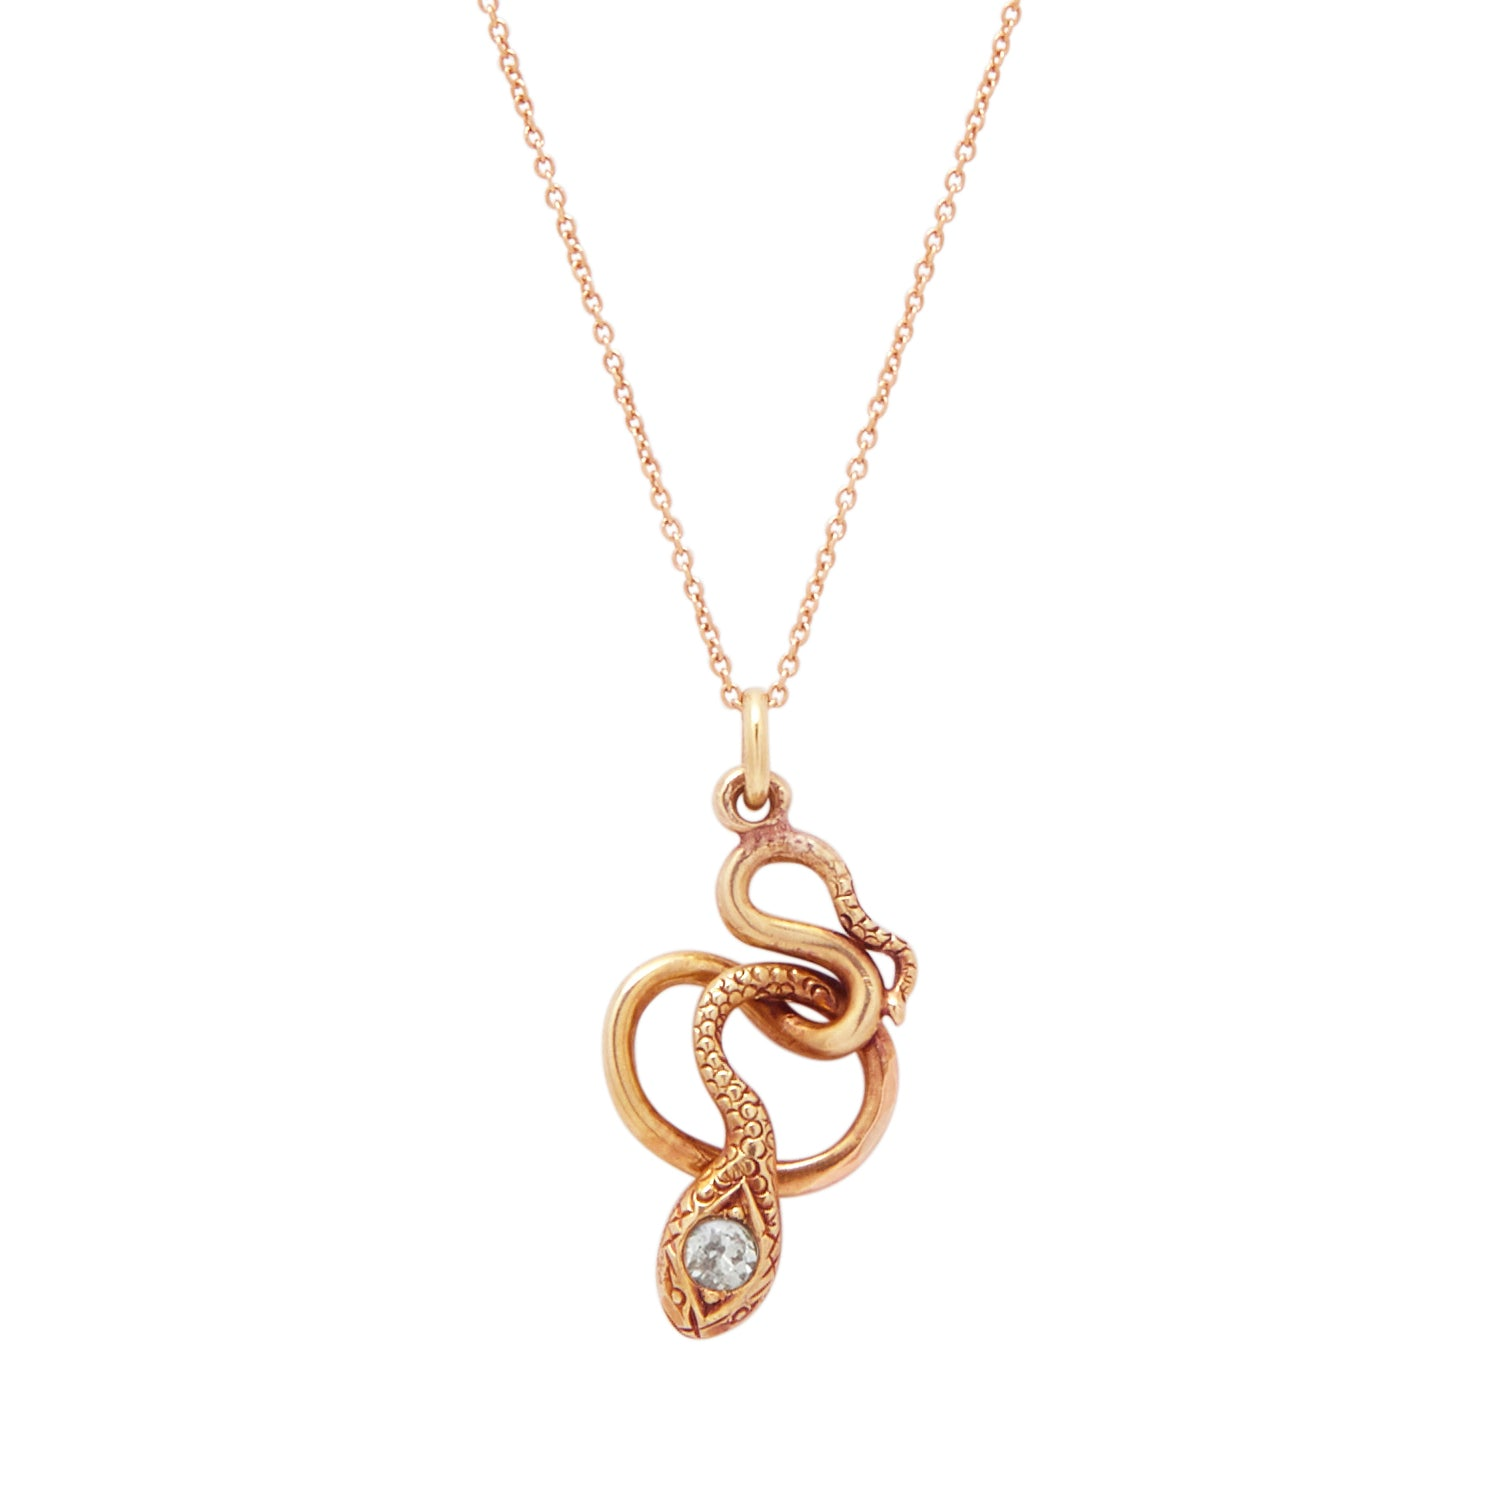 The F&B Rose Gold Snake Charmer Necklace